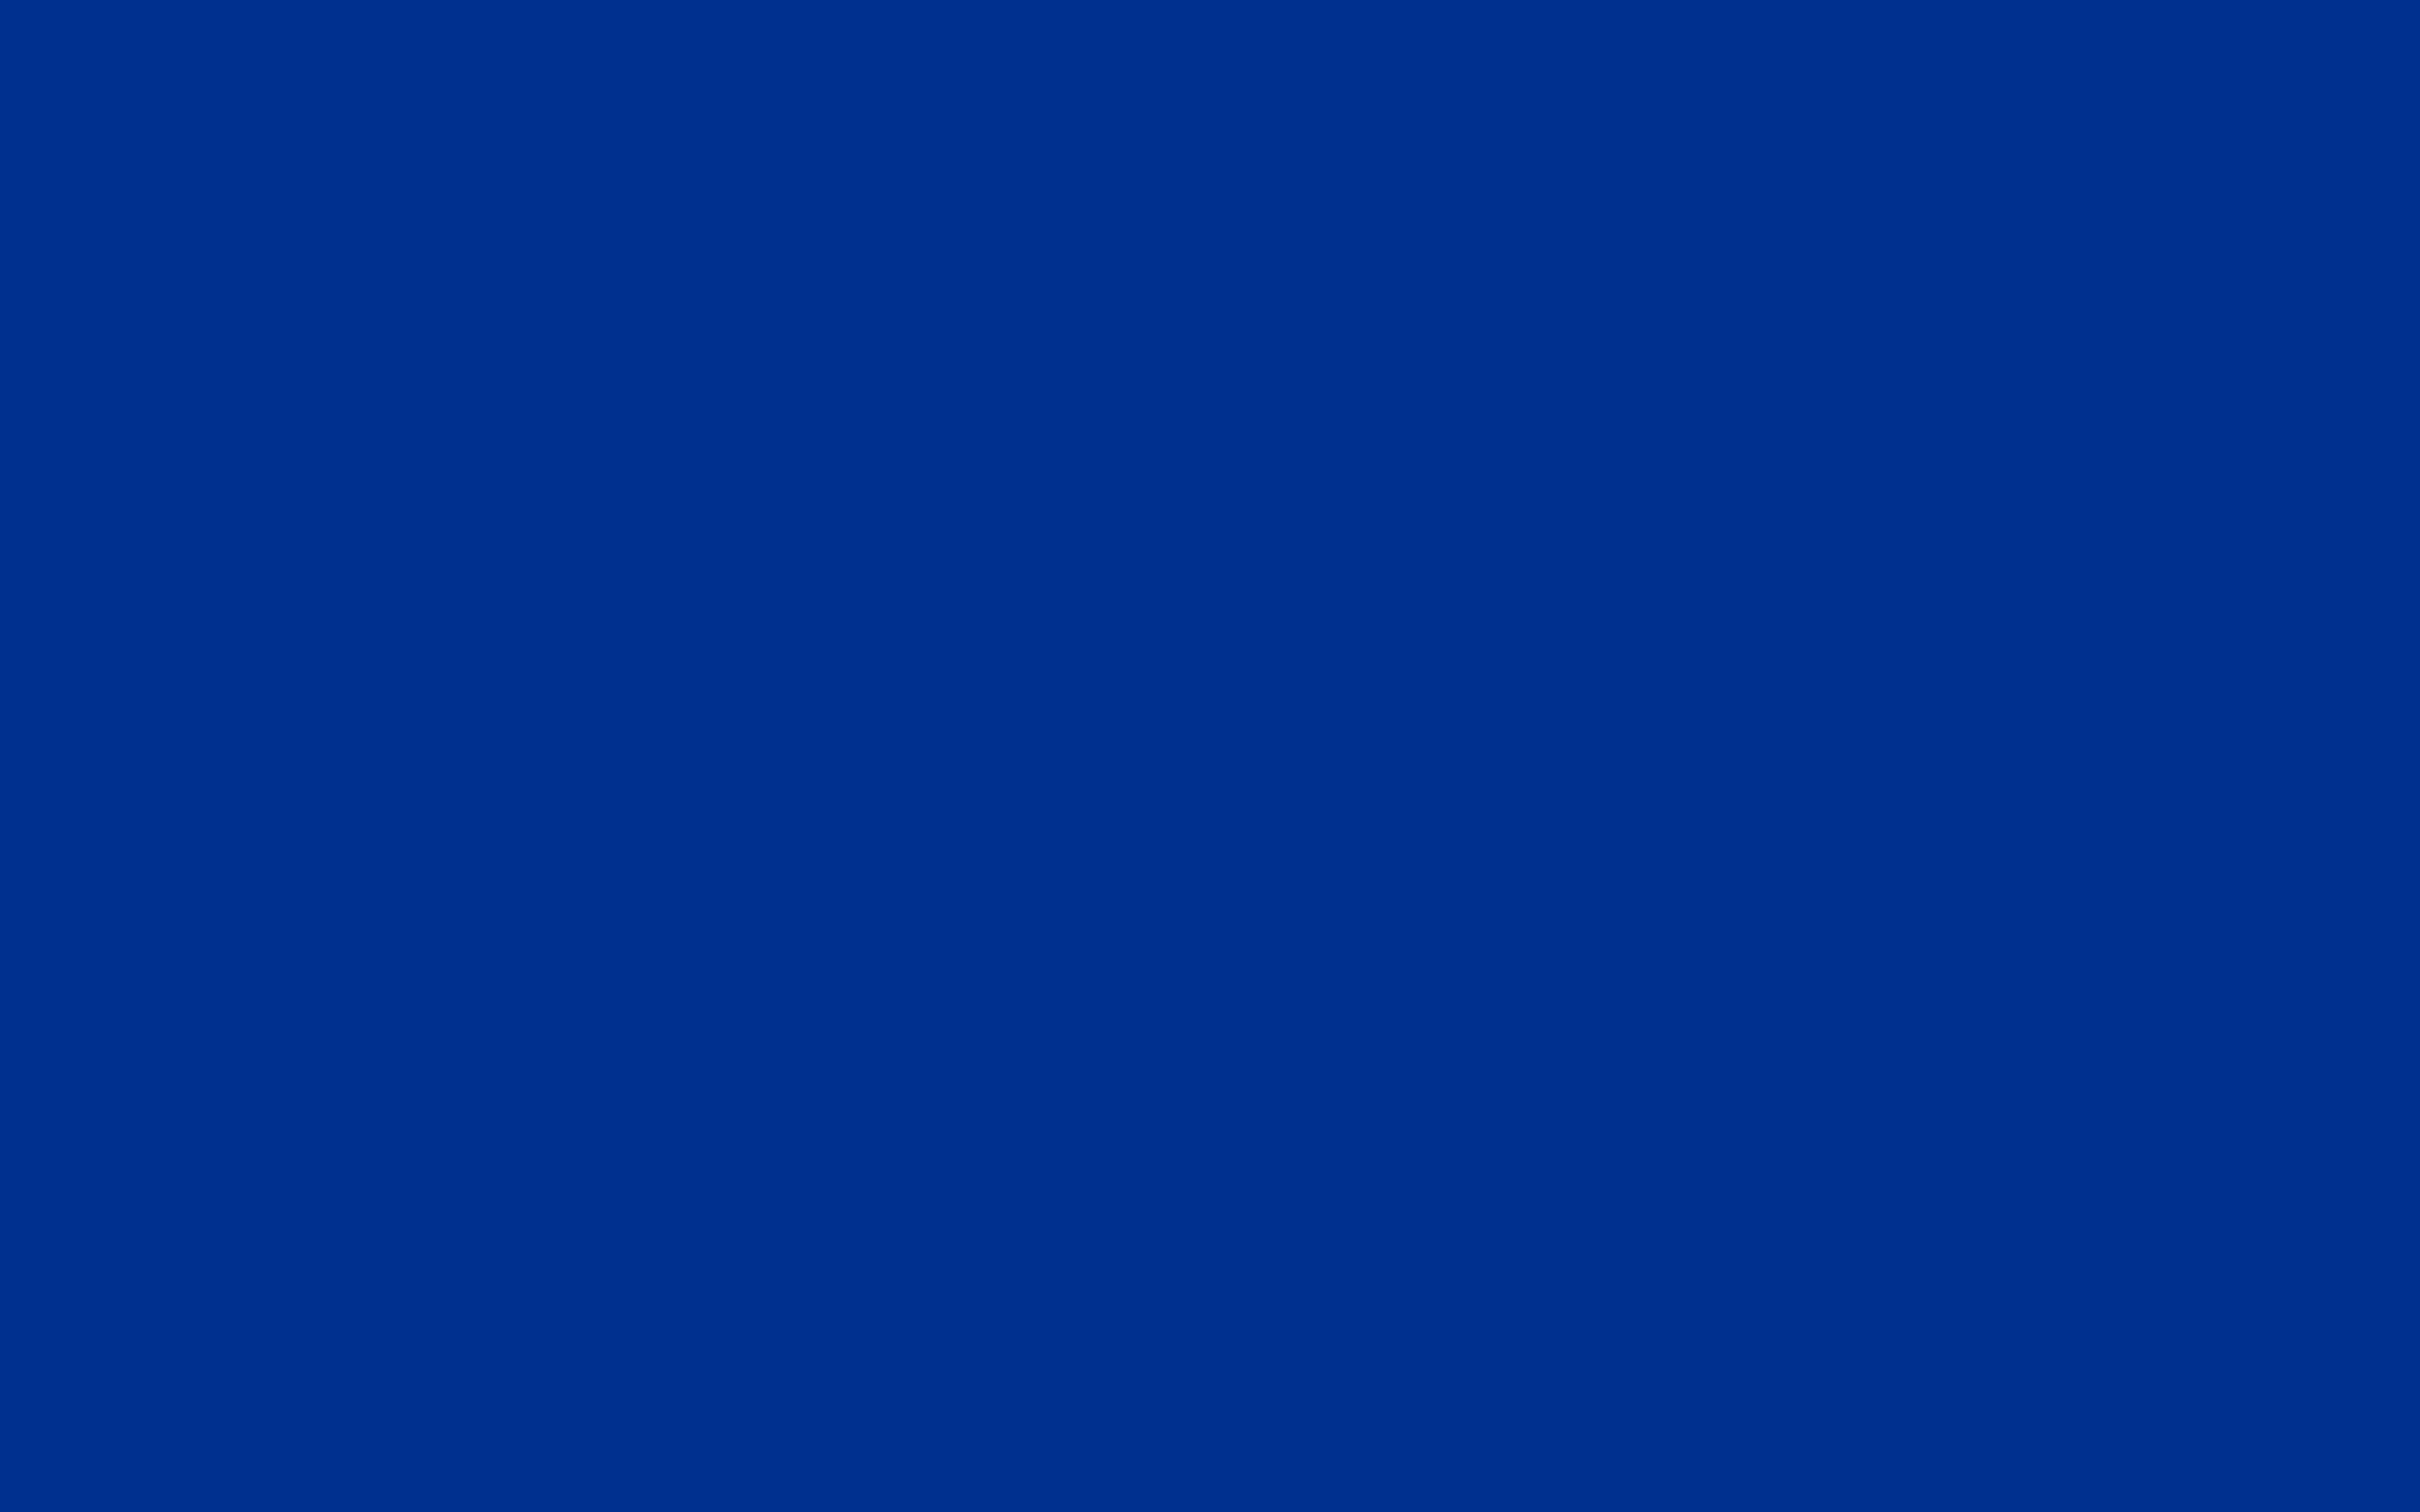 color background solid blue air force dark backgrounds images 2880x1800